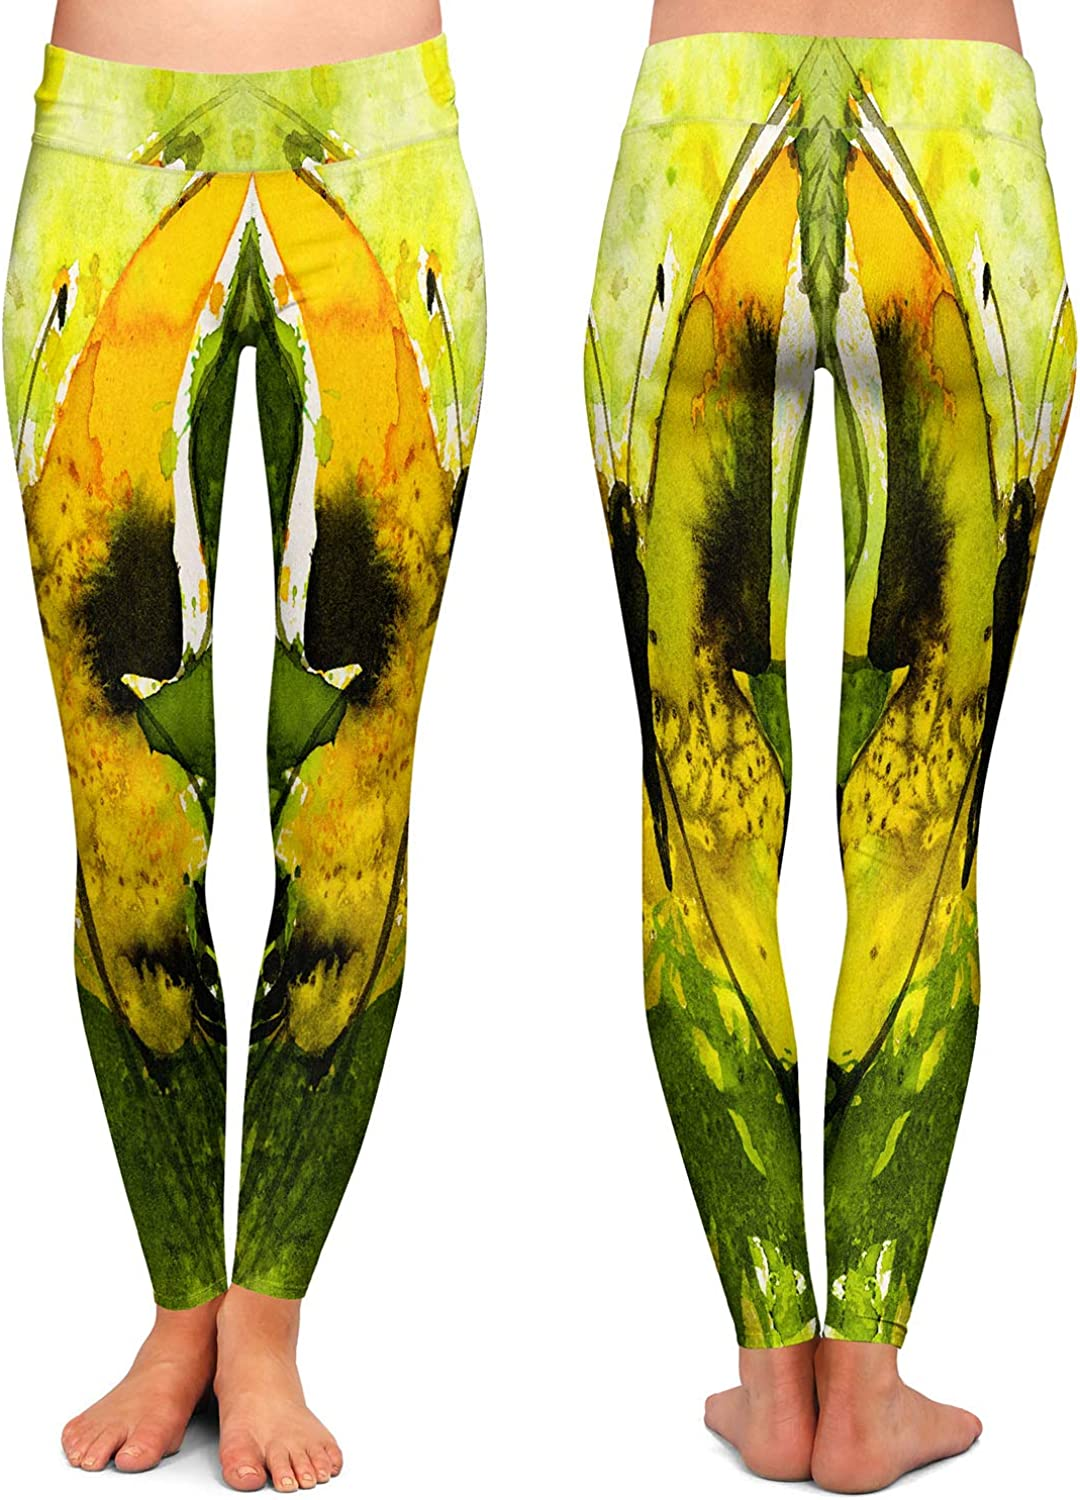 Watercolor Butterfly 35 Athletic Yoga Leggings from DiaNoche Designs by Kathy Stanion